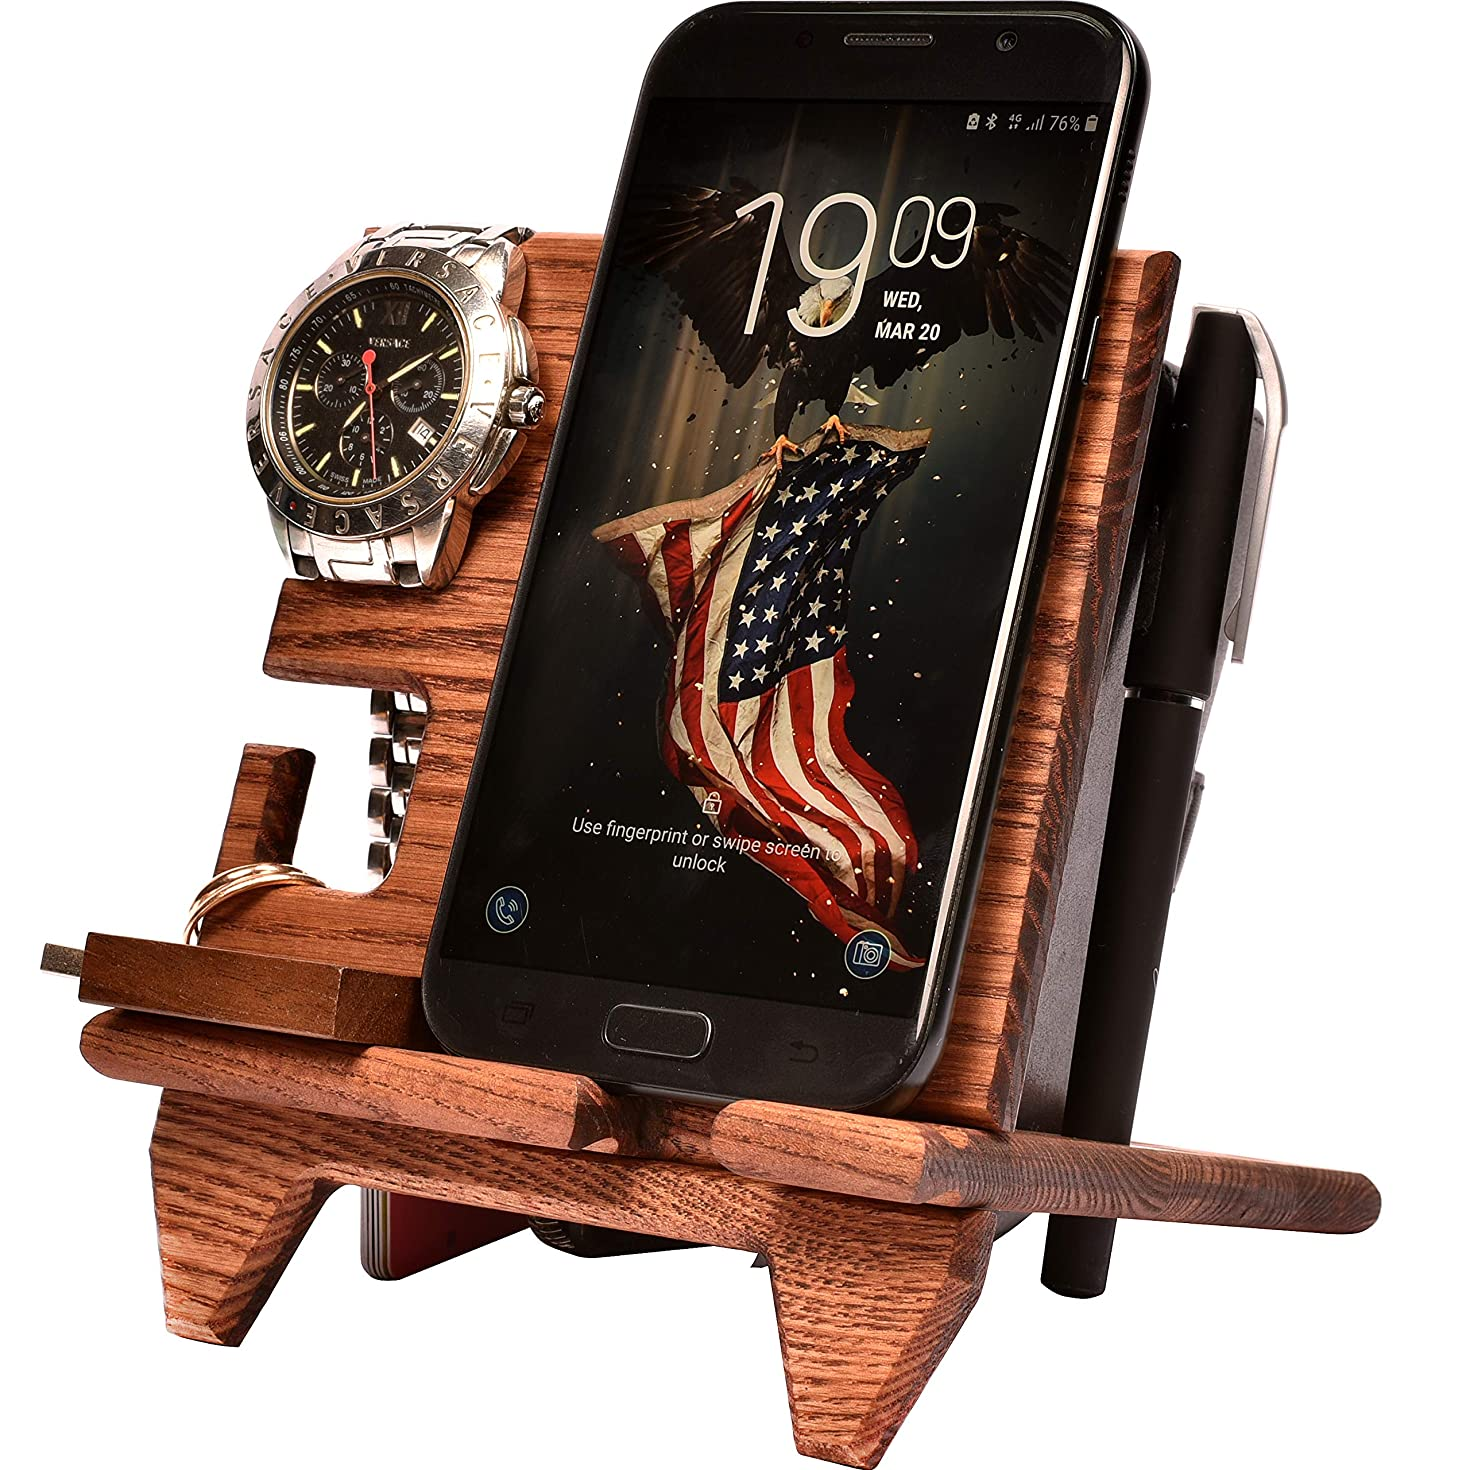 Wood Compact Cell Phone Stand Watch Holder. Men Device Dock Organizer Mobile Base Nightstand Charging Docking Station. Women Accessory Wooden Storage Bed Side Caddy Teen Valet Happy Birthday Gift